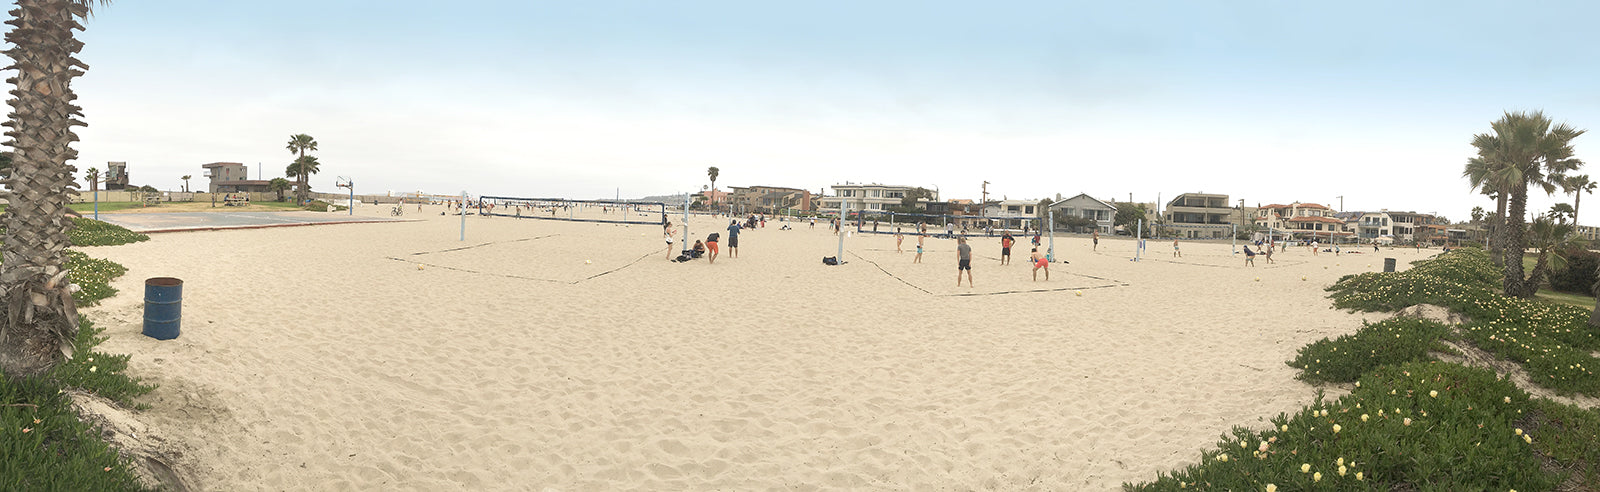 2019 Volleyball courts